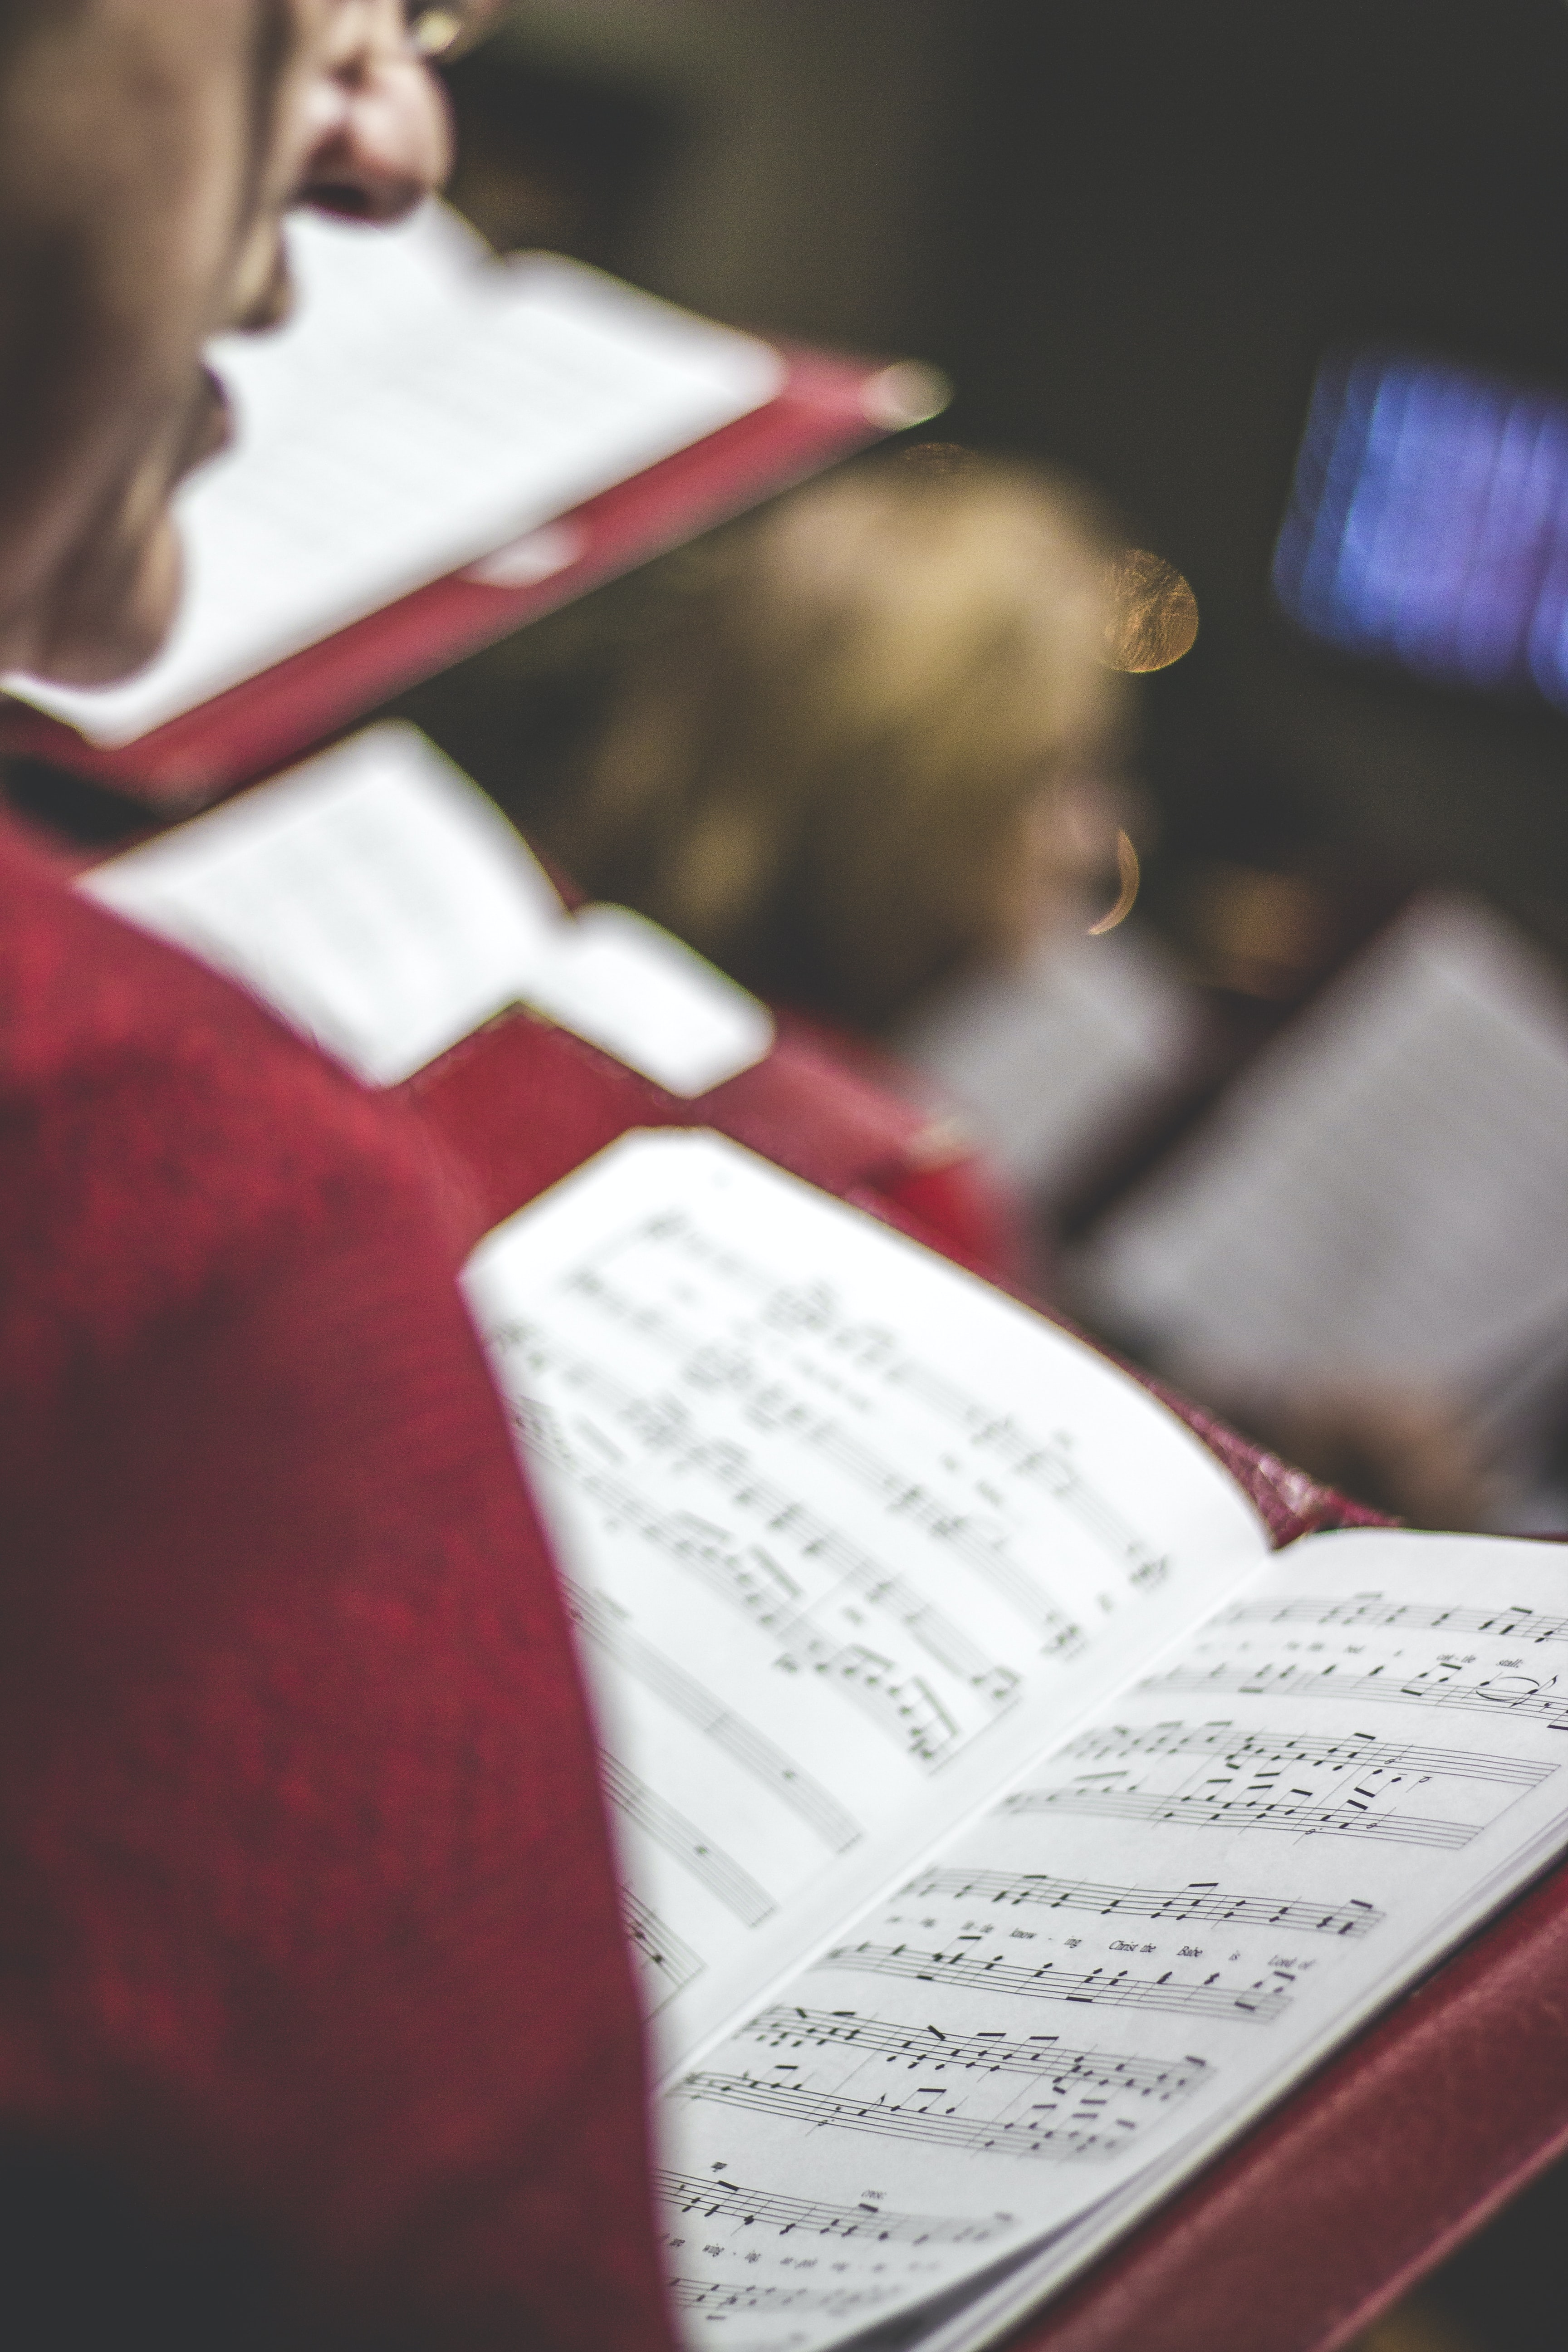 A member of a chorus singing while looking down a music score in a red leather case